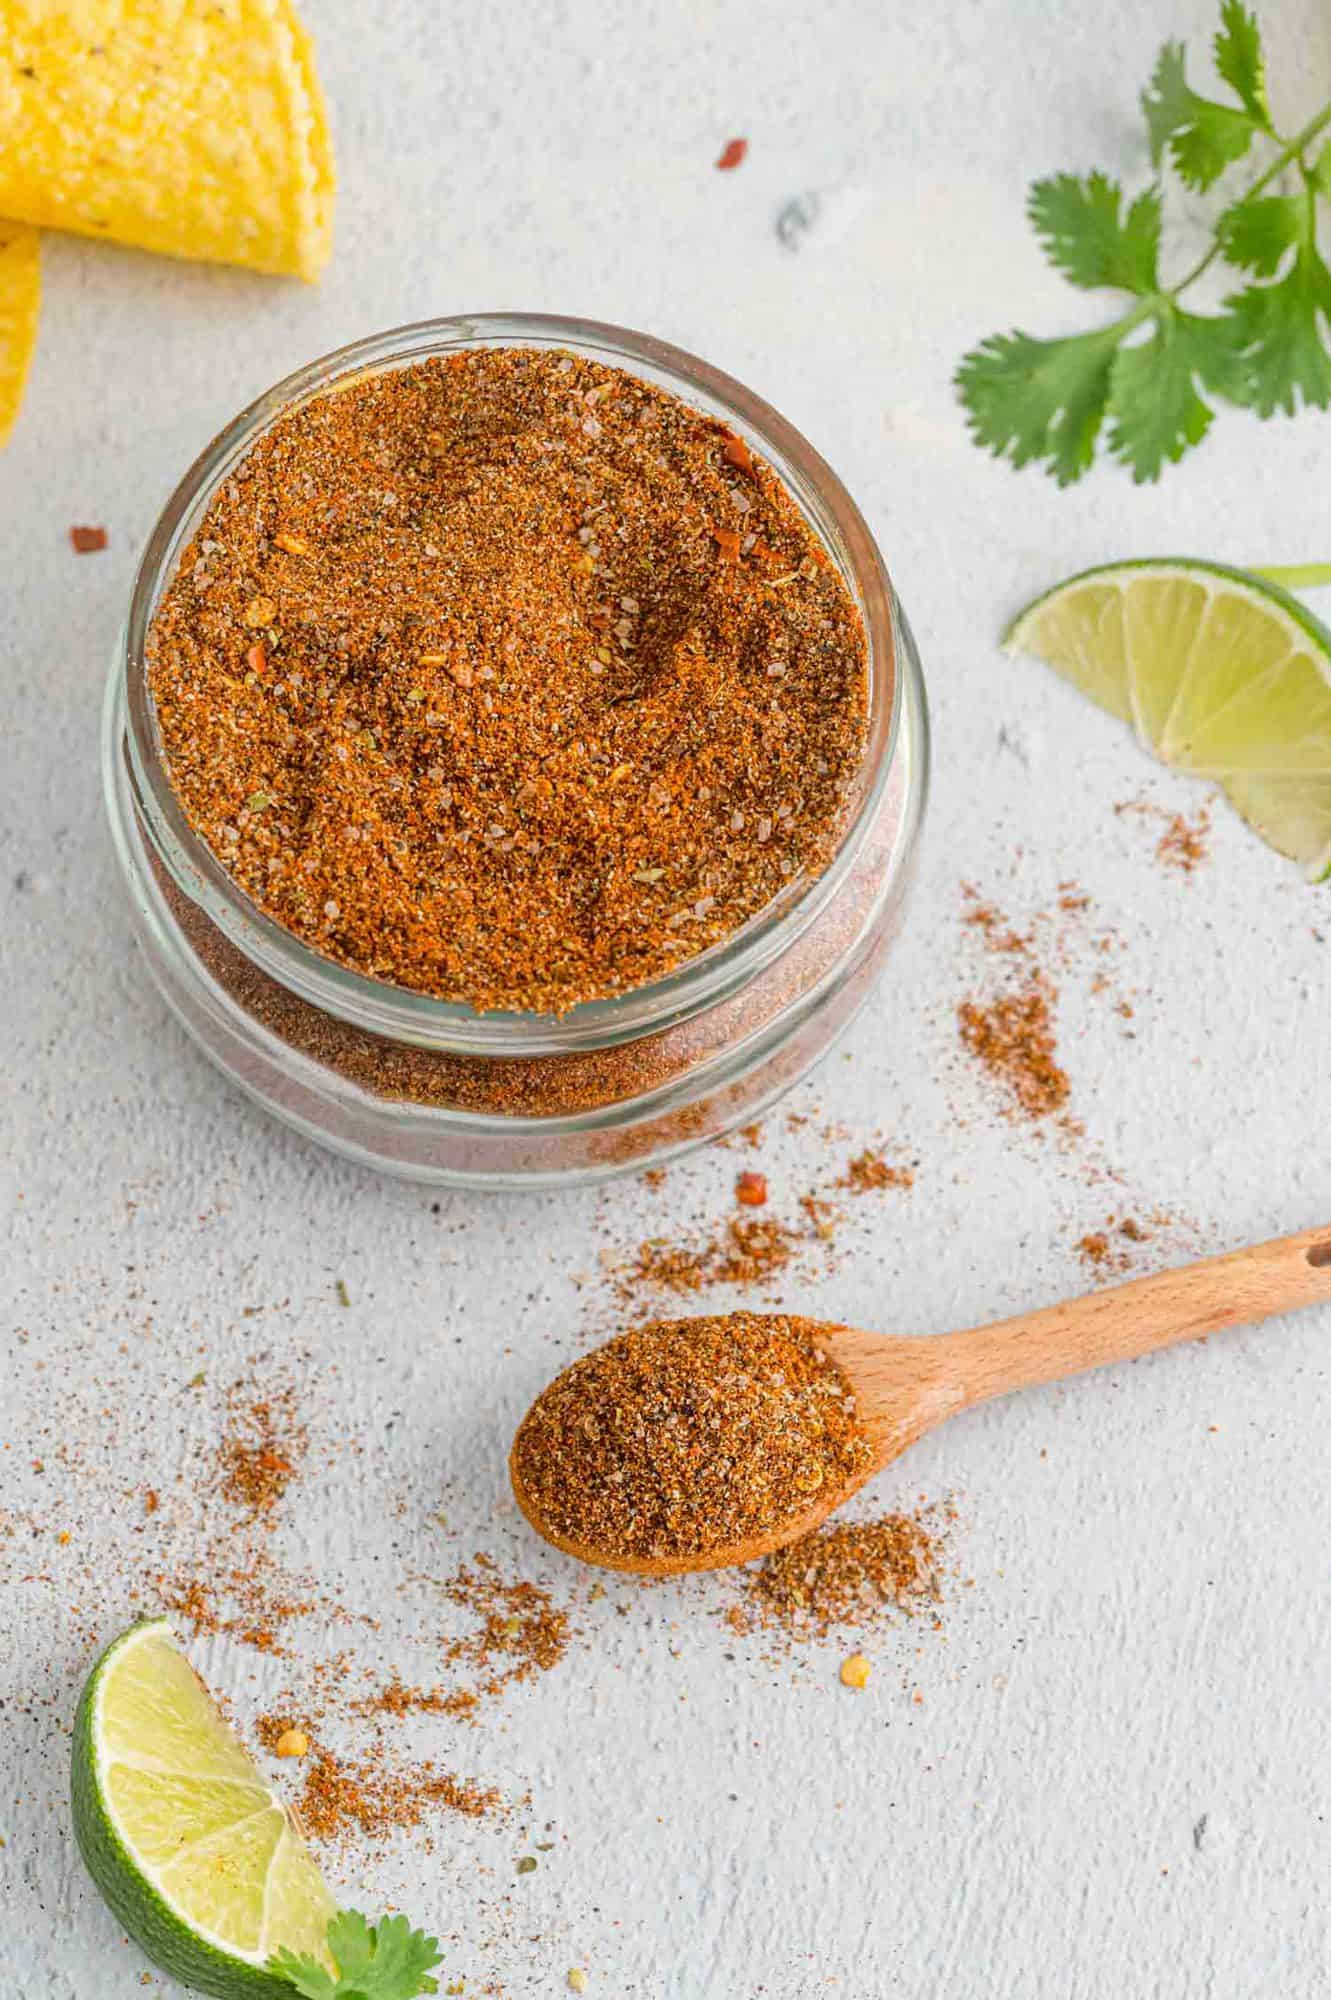 Taco seasoning in a small jar, a wooden spoonful nearby, and a lime wedge.